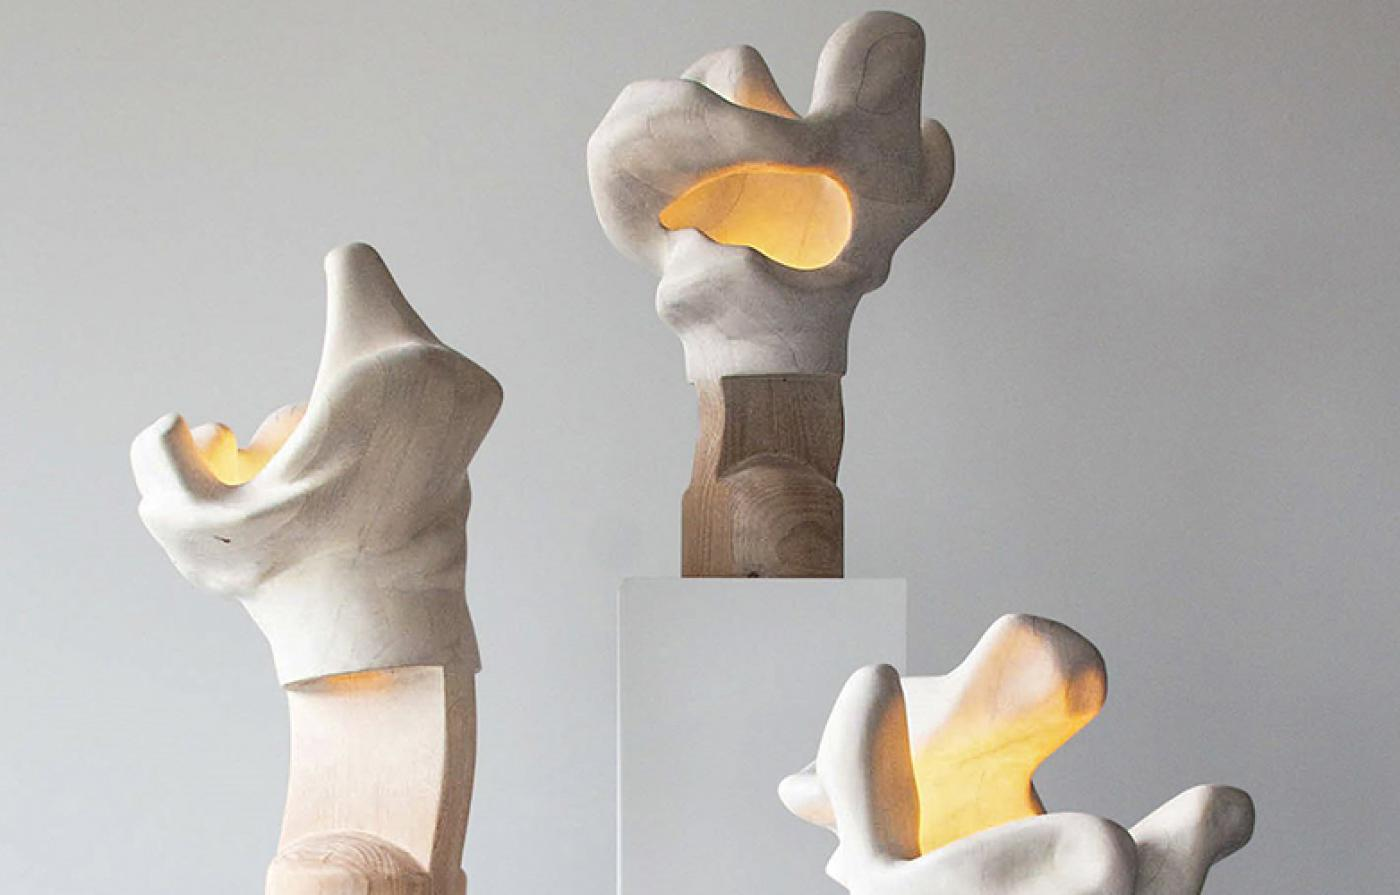 Twentieth Presents Contemporary Hand-Crafted Design From 8 Top Artists